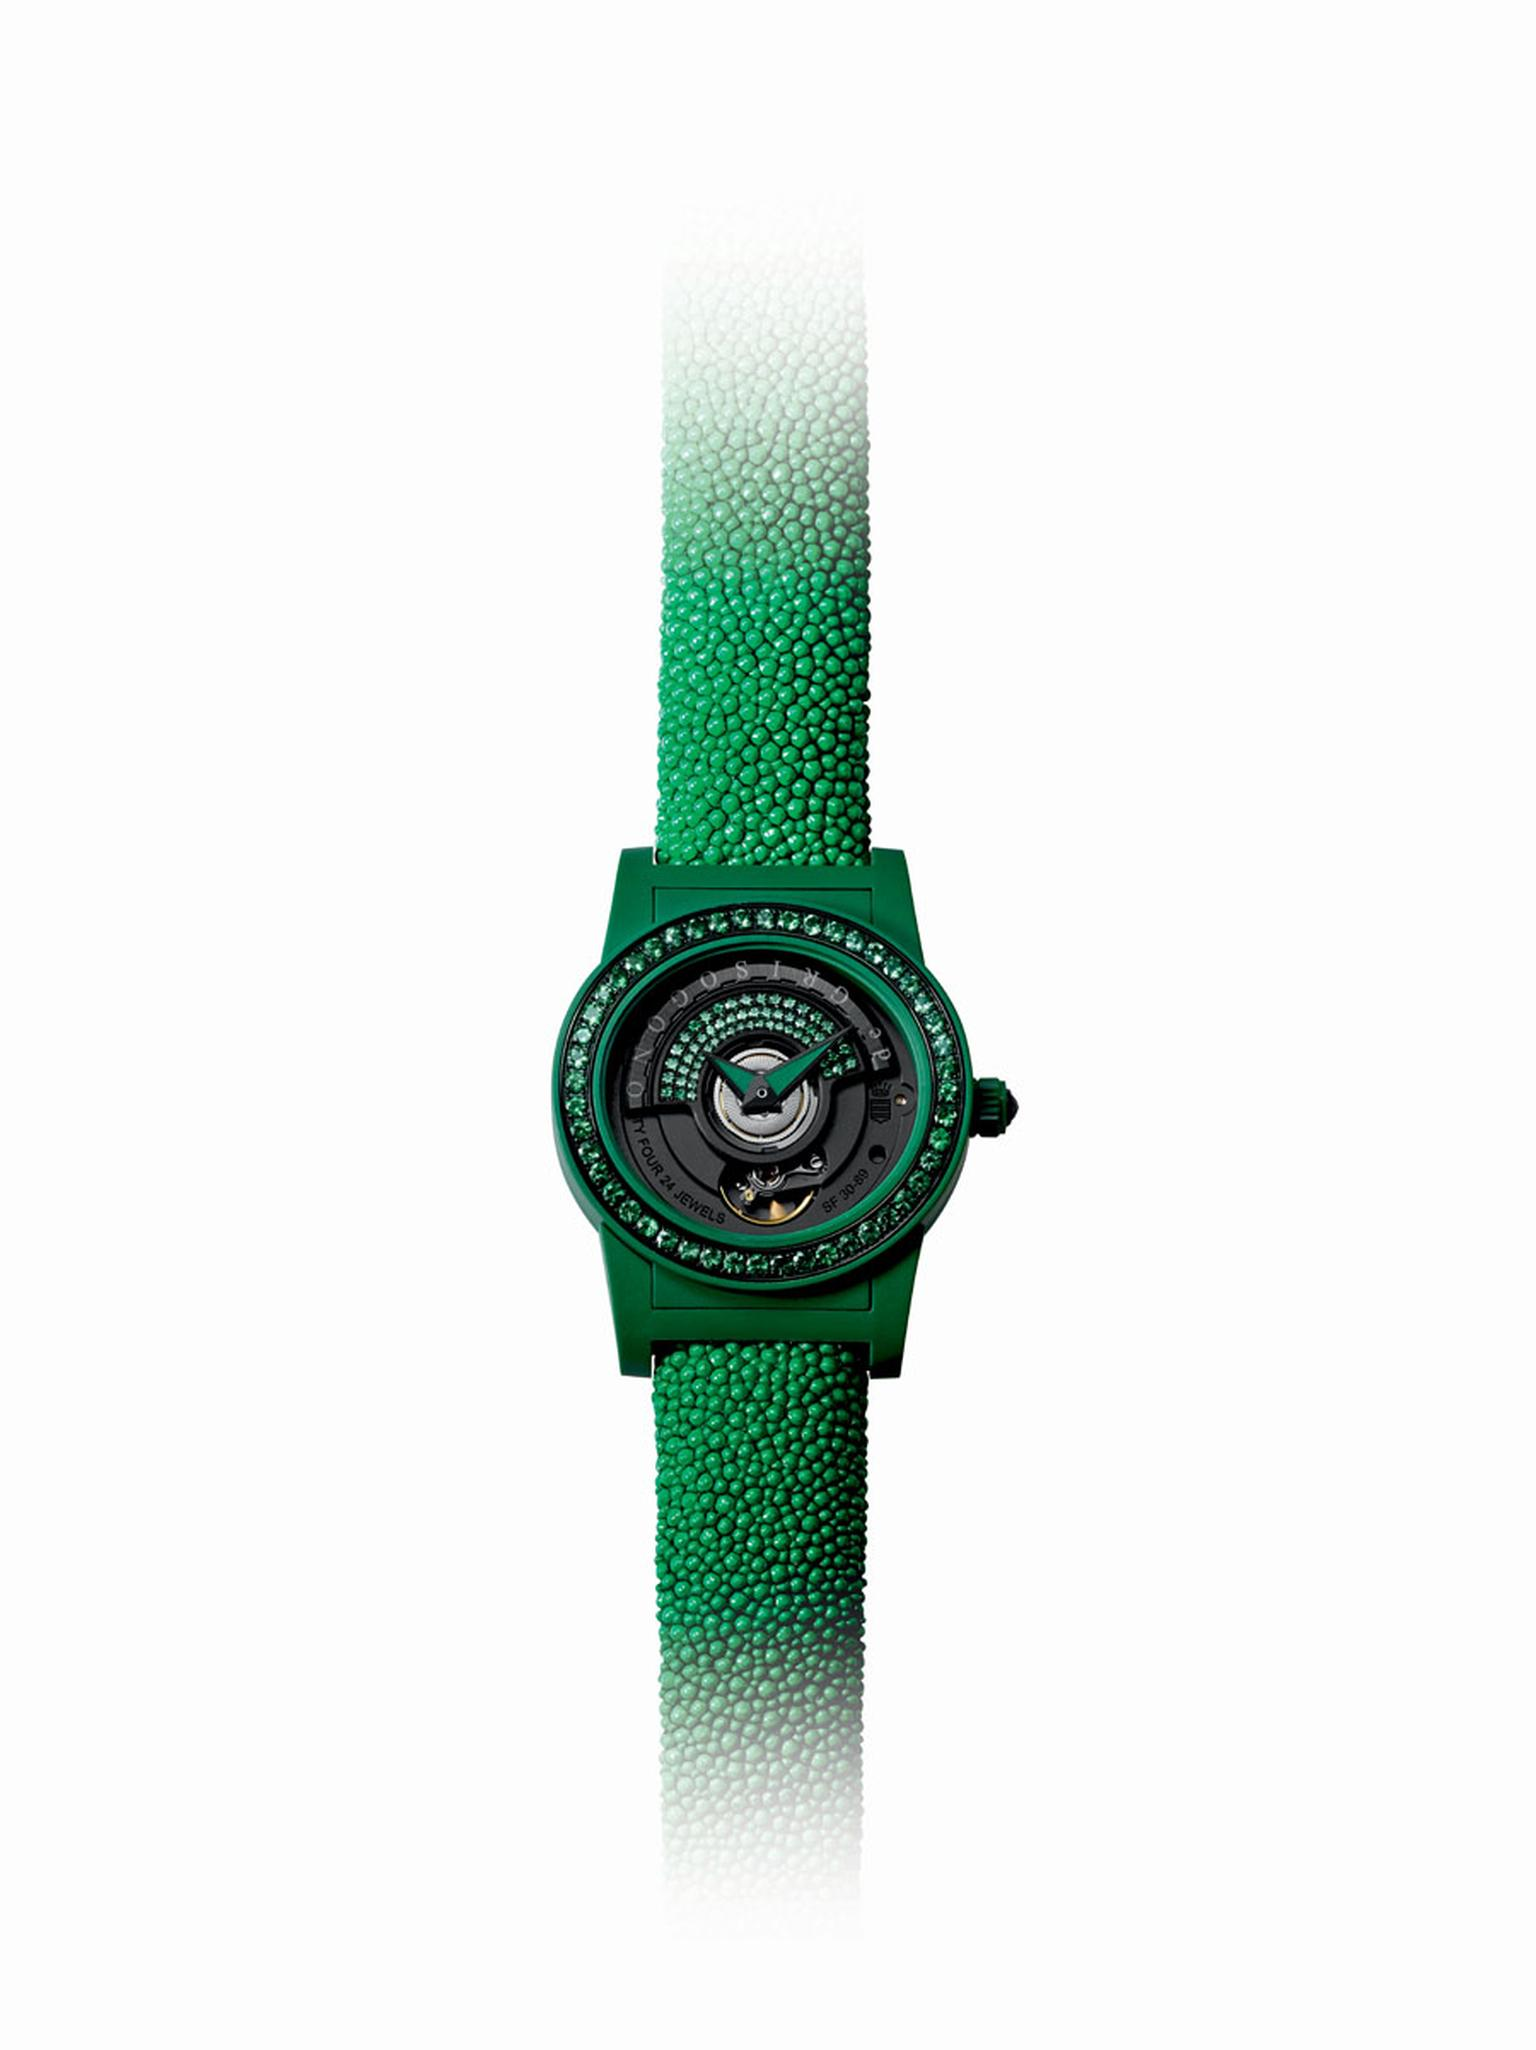 de GRISOGONO's 'Tondo by Night' watch, in forest green.